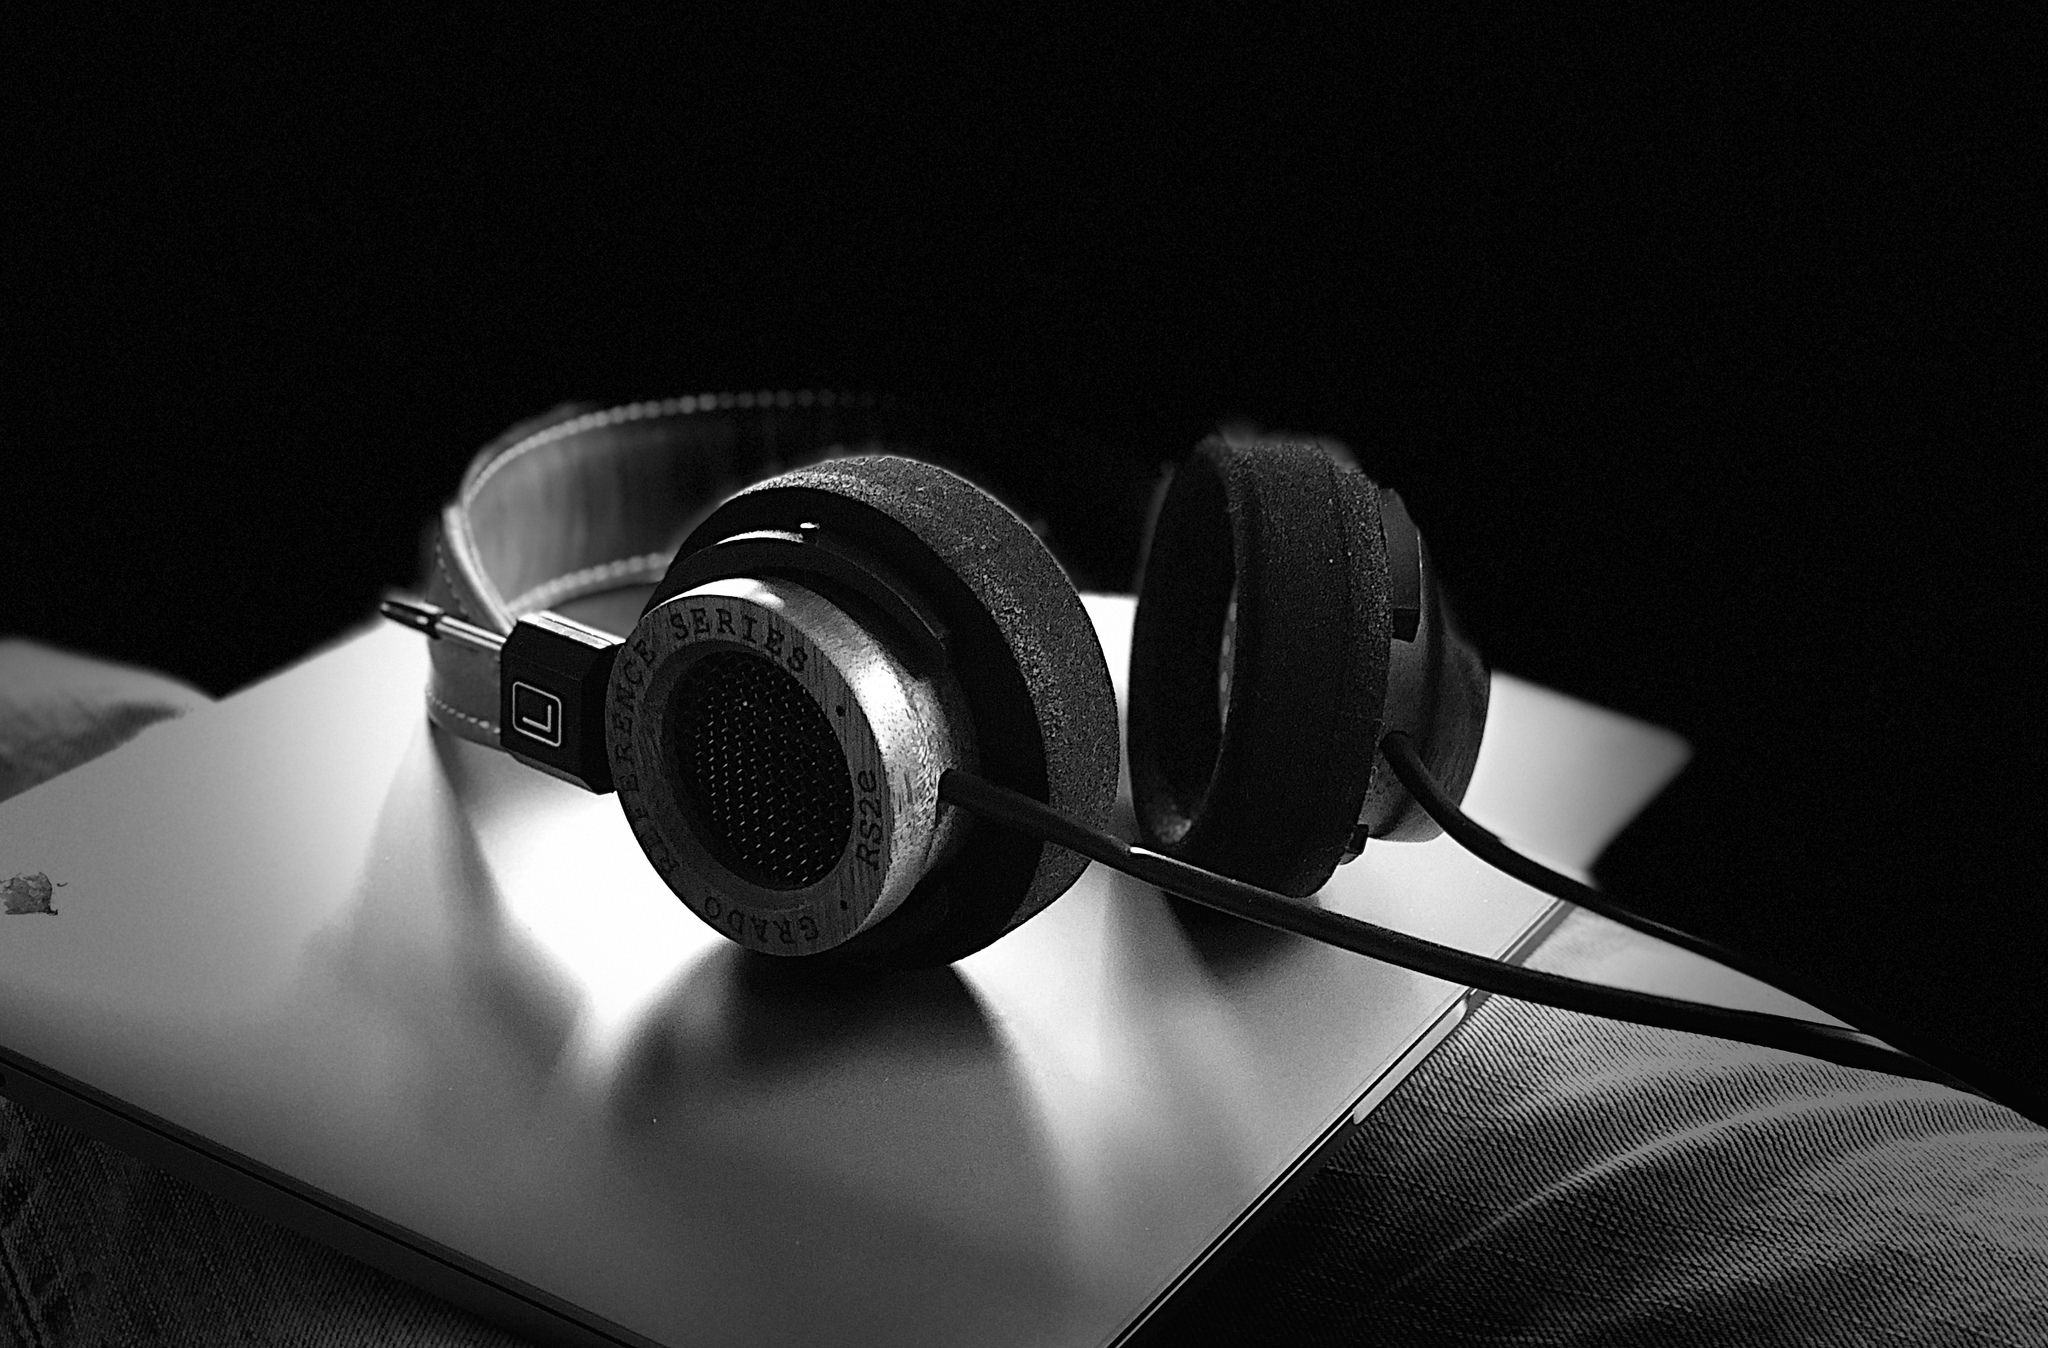 Noise-cancelling headphones could be the key to a peaceful trip. Image credit:    Umair Abbasi   /   Creative Commons